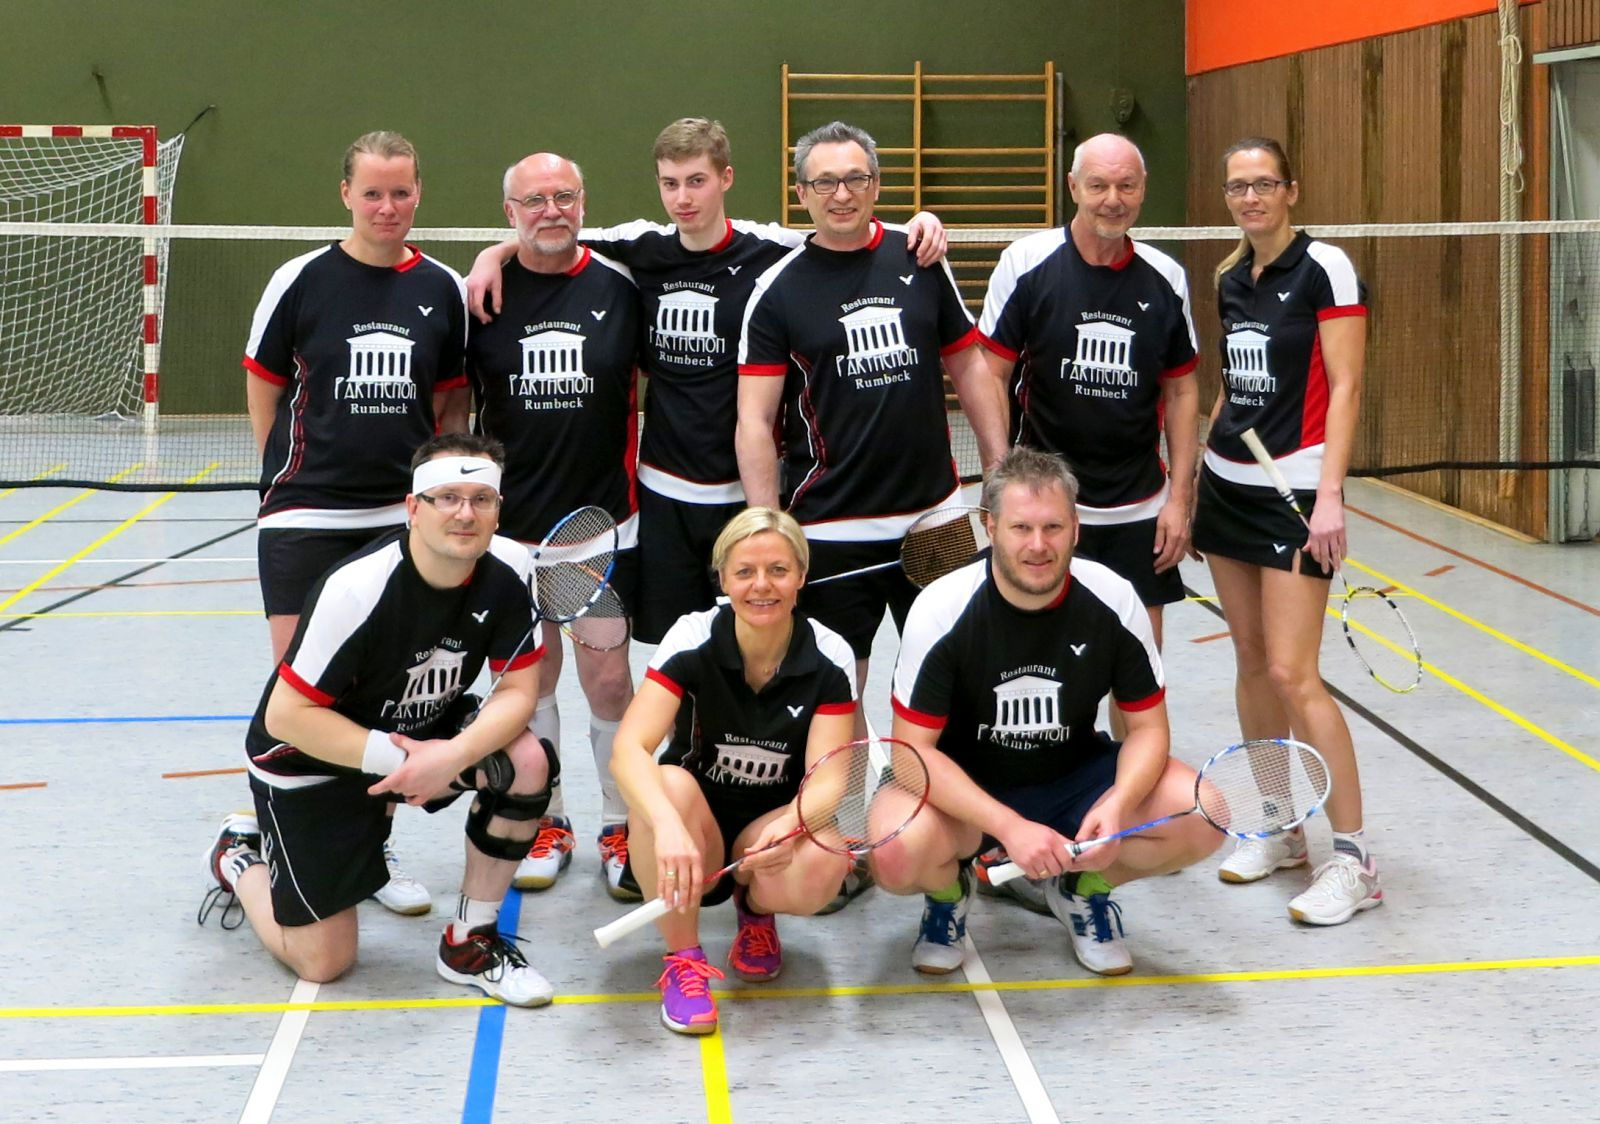 Badminton Team des TV Hemeringen in der Saison 2016/17